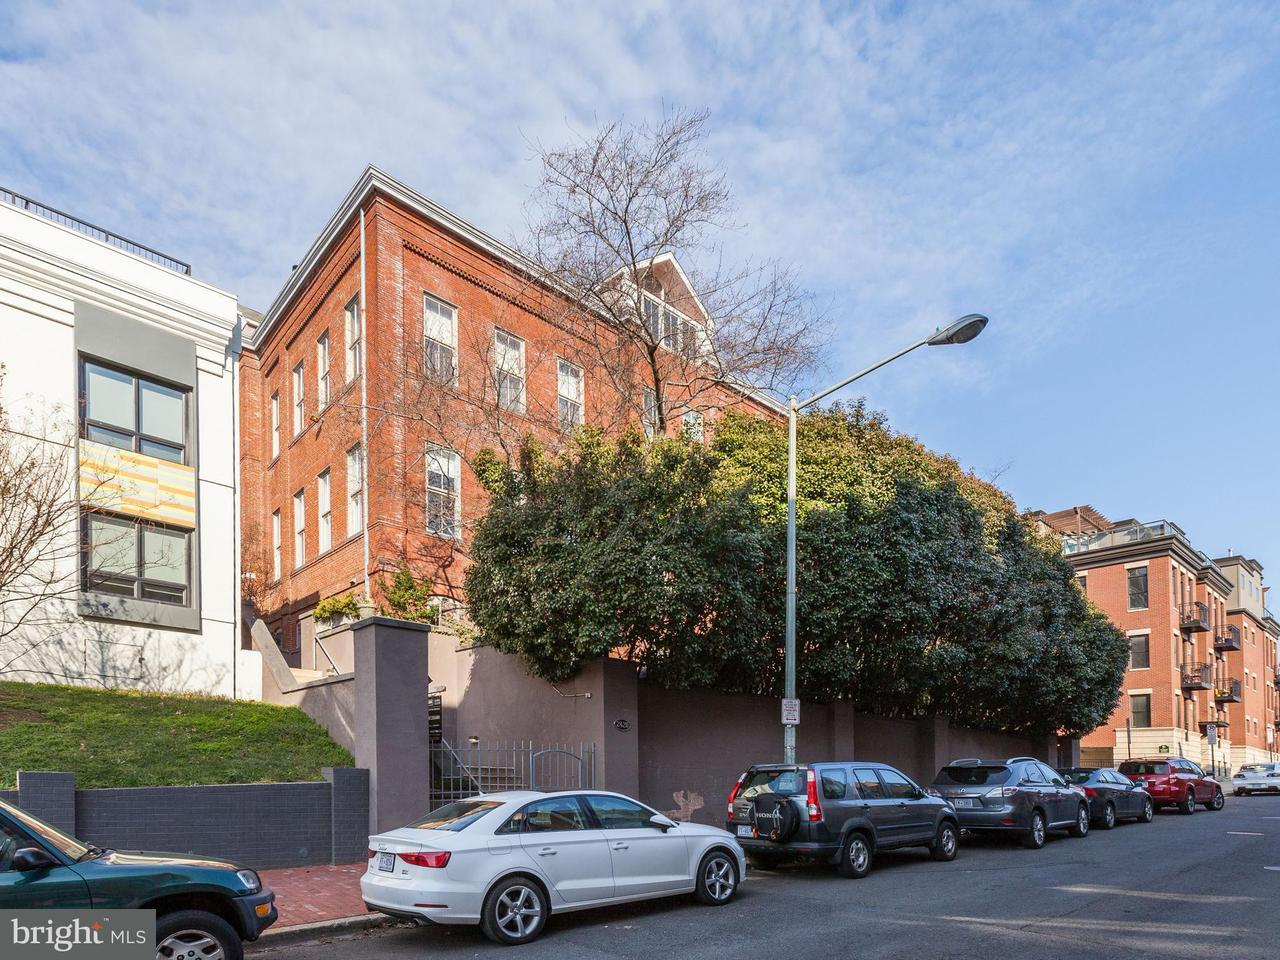 Single Family Home for Sale at 2428 17th St Nw #3w 2428 17th St Nw #3w Washington, District Of Columbia 20009 United States